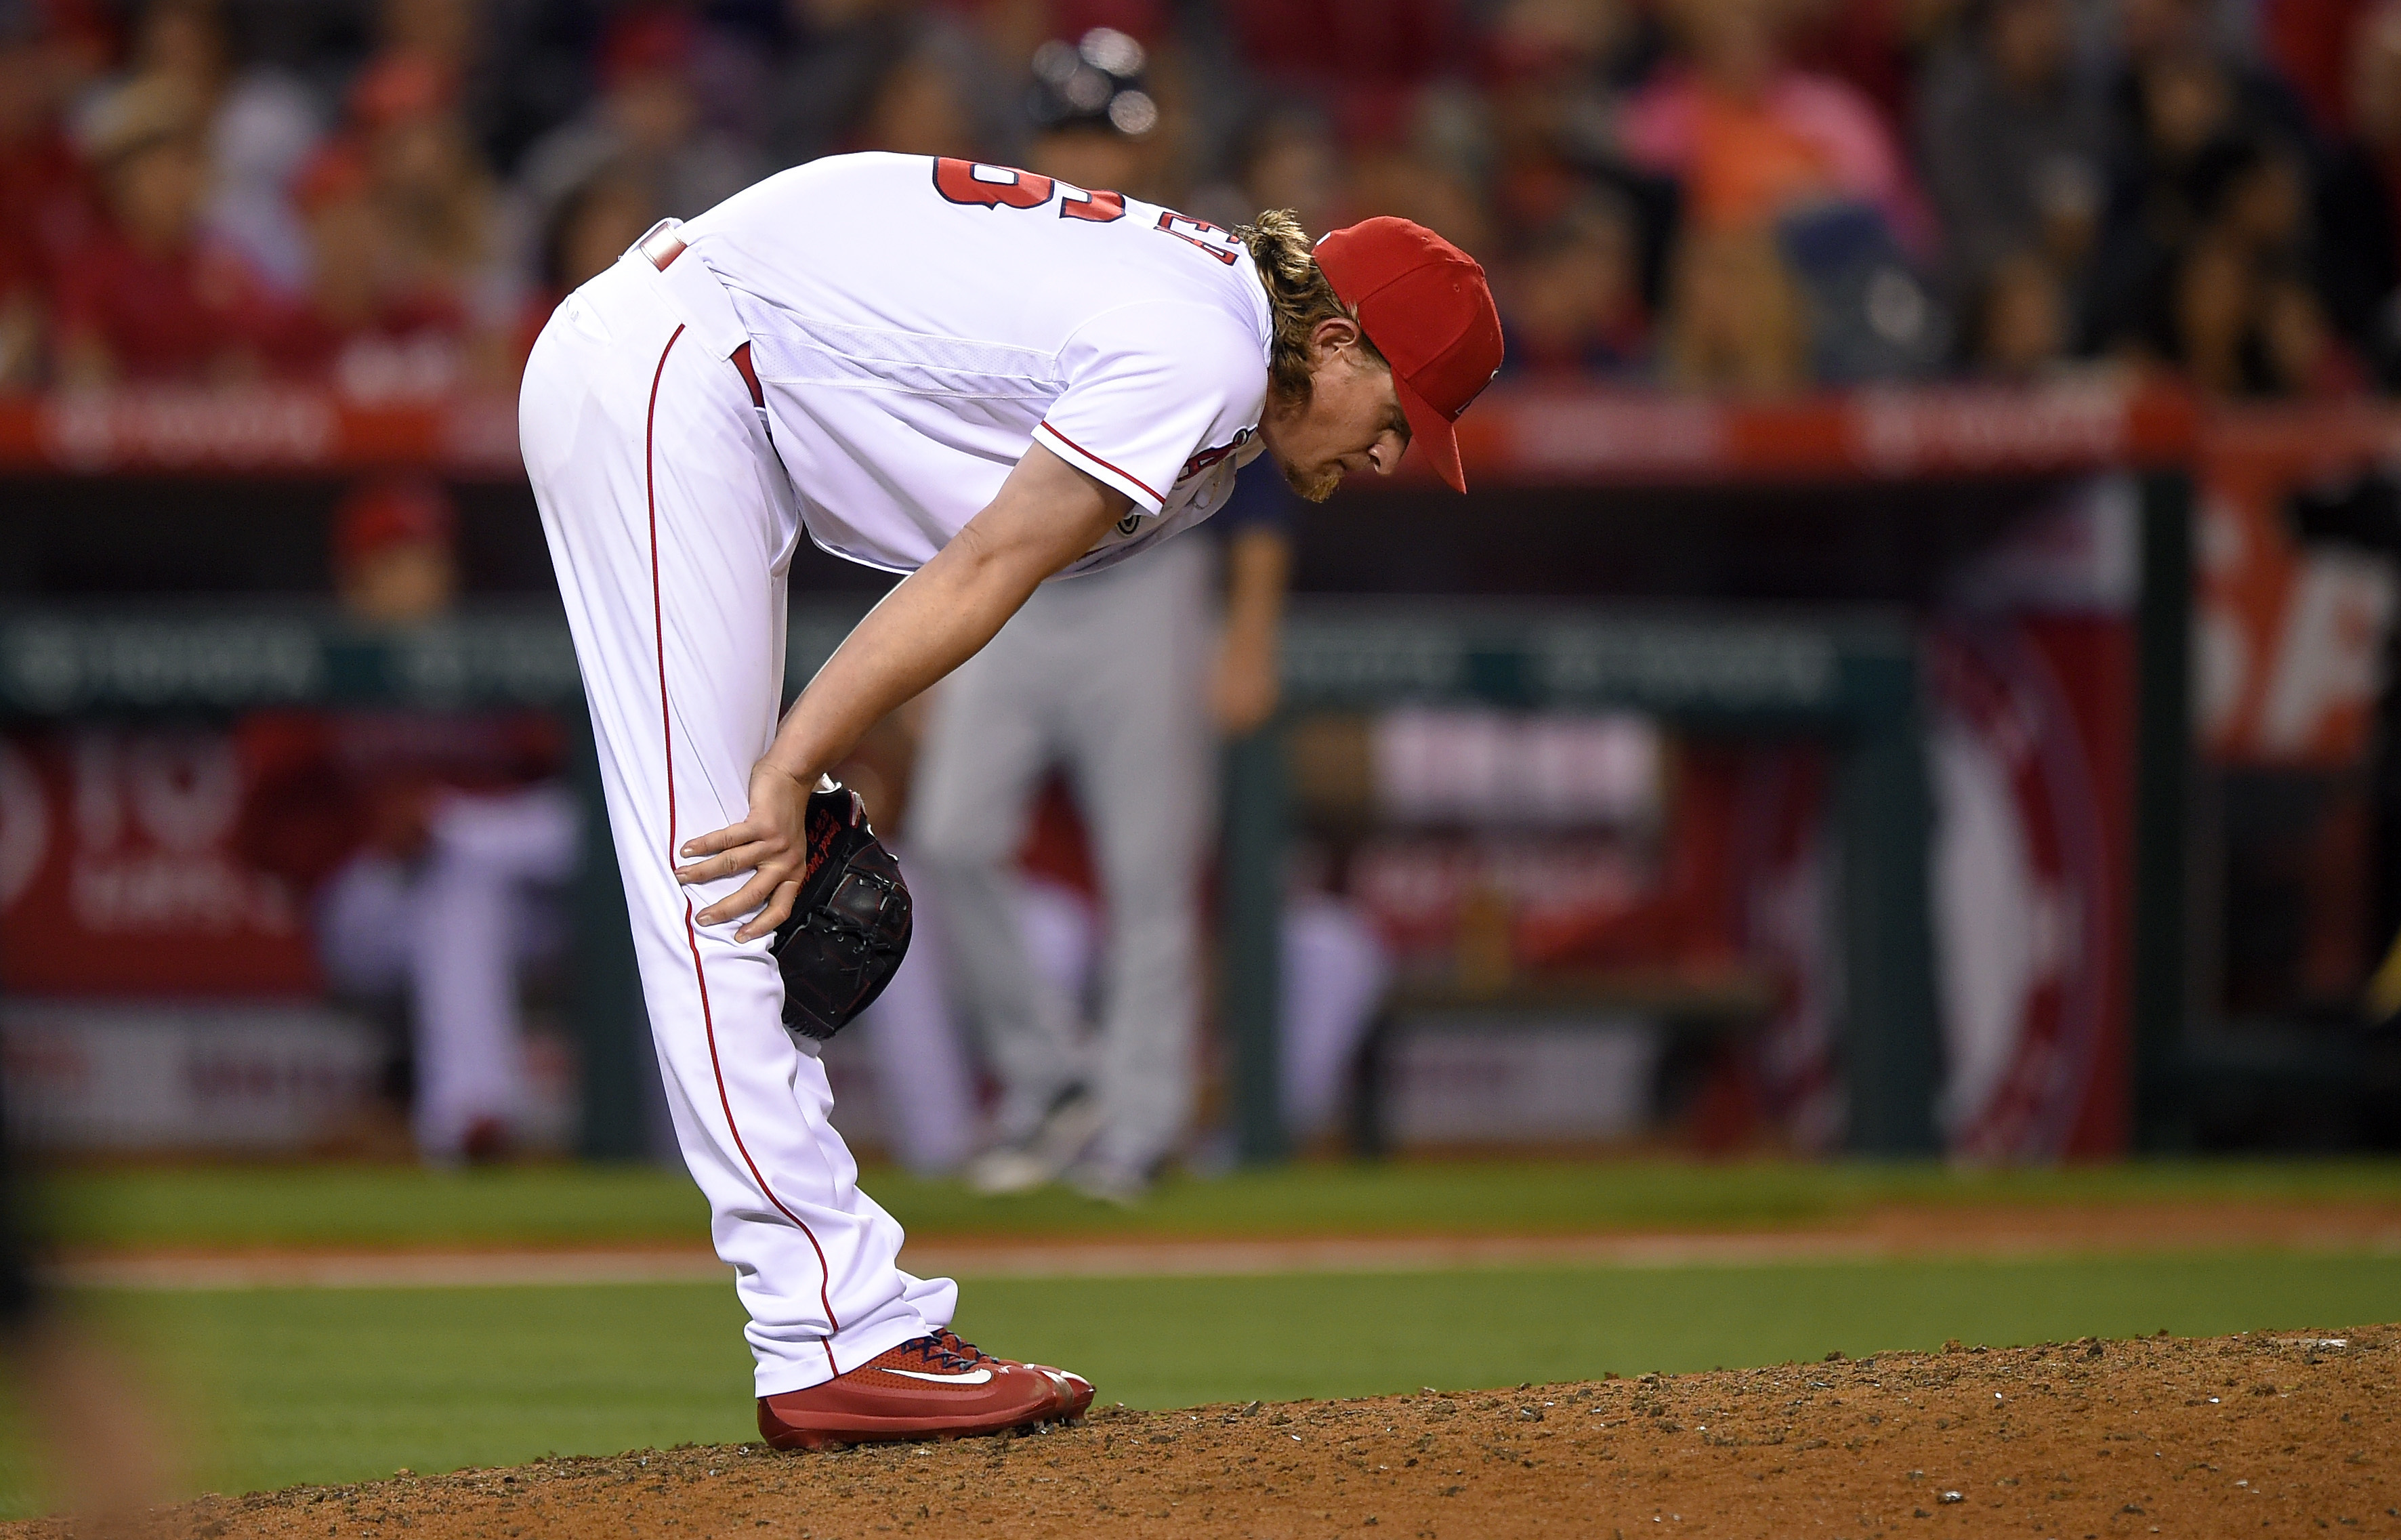 Los Angeles Angels starting pitcher Jered Weaver leans over the mound after giving up a solo home run to Minnesota Twins' Byron Buxton during the sixth inning of a baseball game Monday, June 13, 2016, in Anaheim, Calif. (AP Photo/Mark J. Terrill)